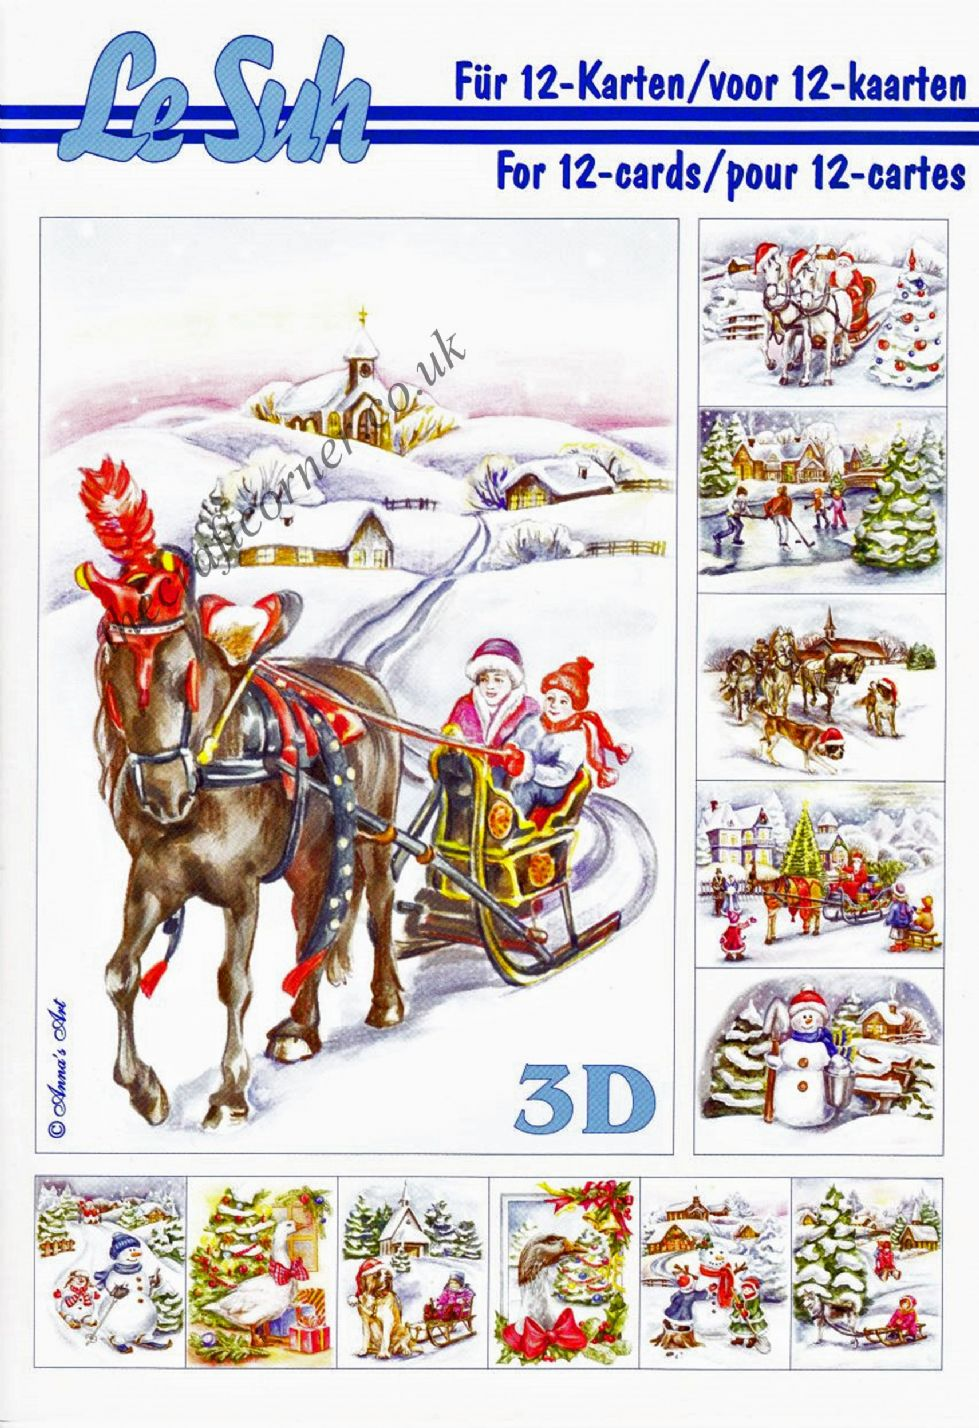 Assez Christmas Scenes A5 3D Decoupage Book from Le Suh QB47